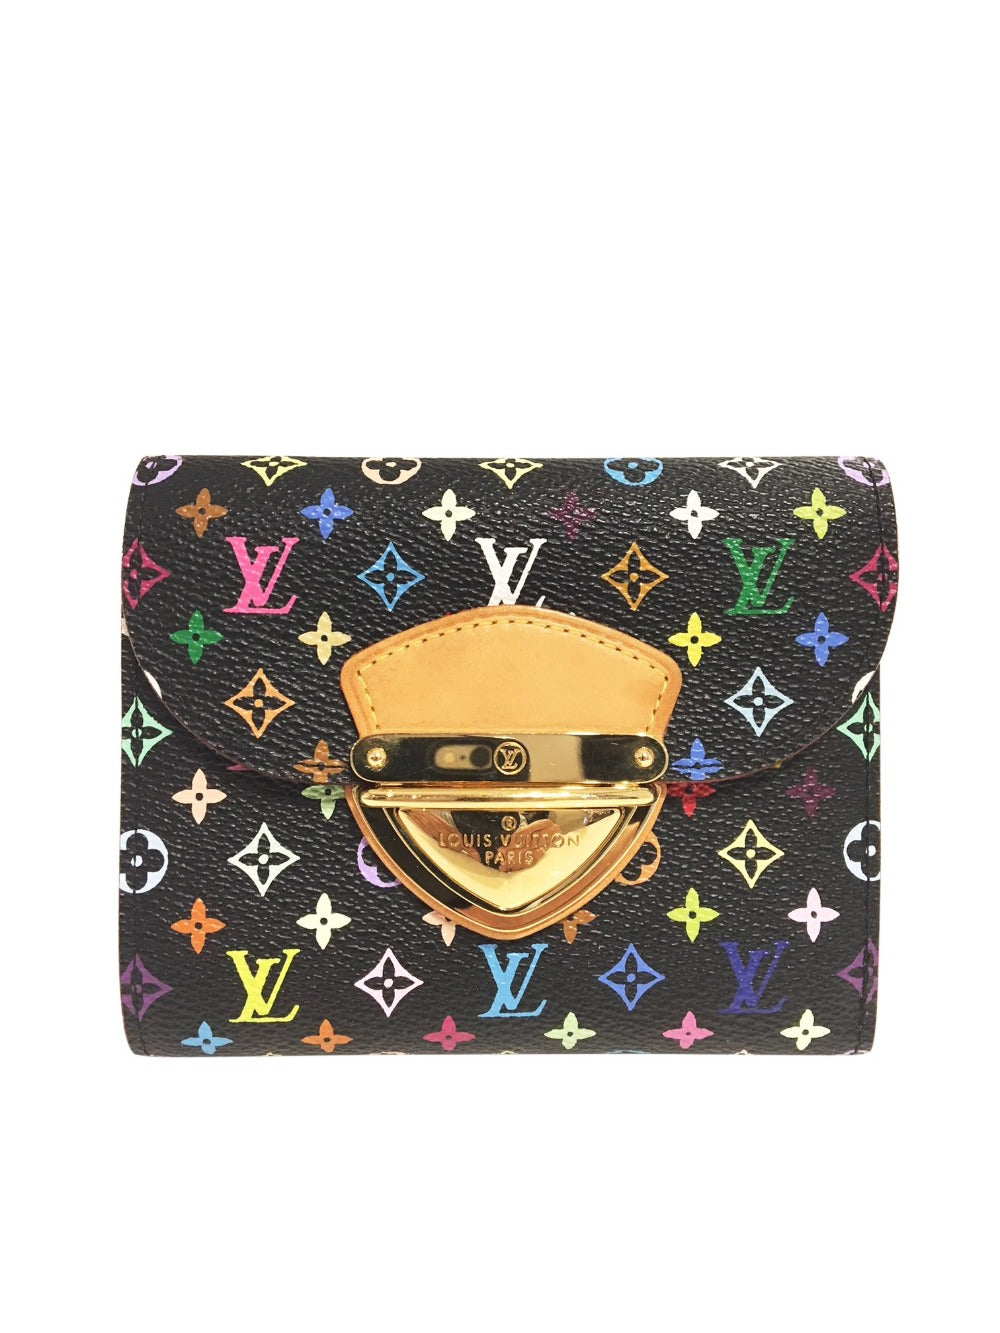 Louis Vuitton Tricolor Wallet - aptiques by Authentic PreOwned